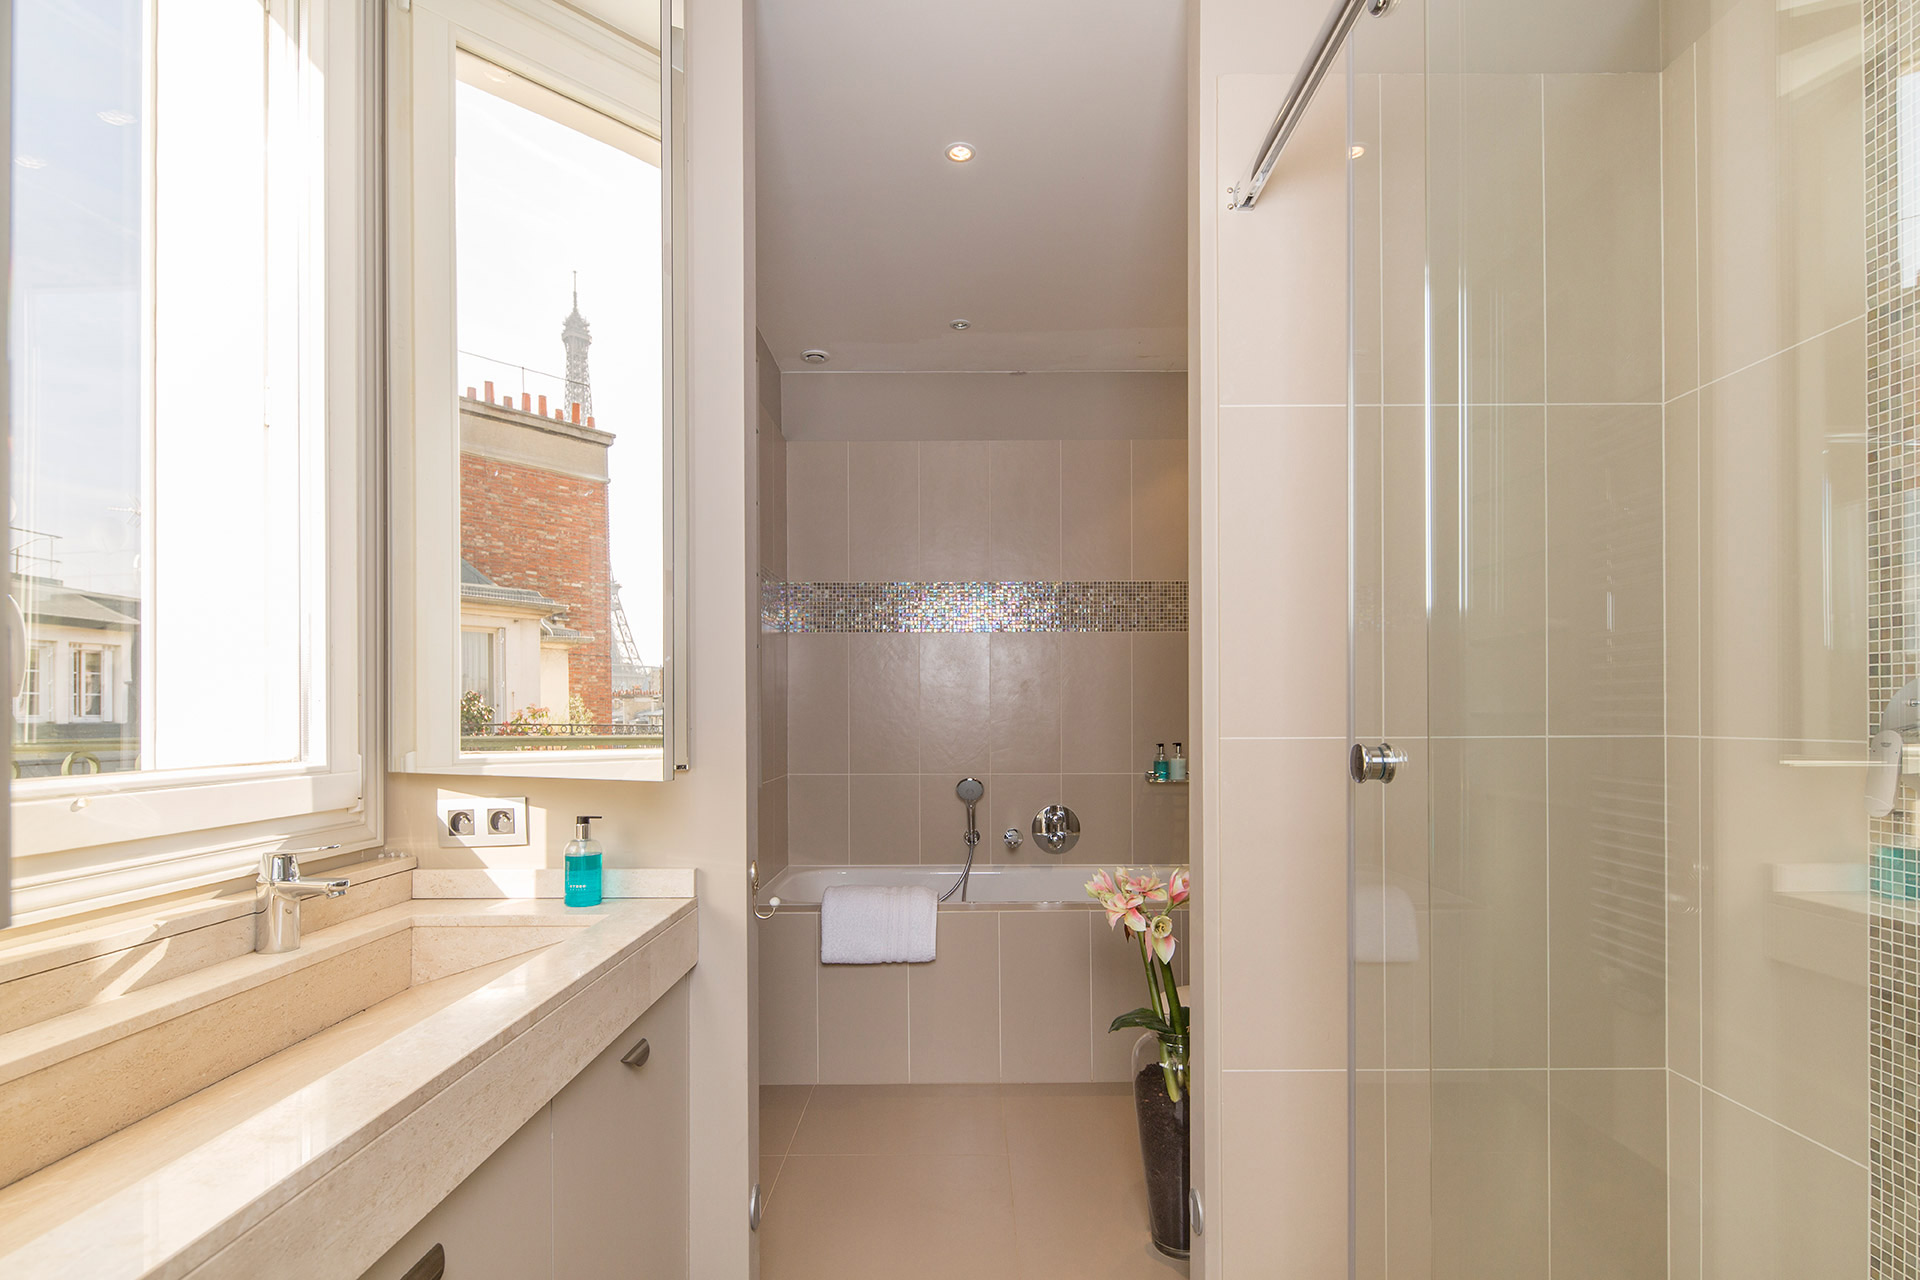 Luxurious en suite bathroom in the Margaux vacation rental offered by Paris Perfect